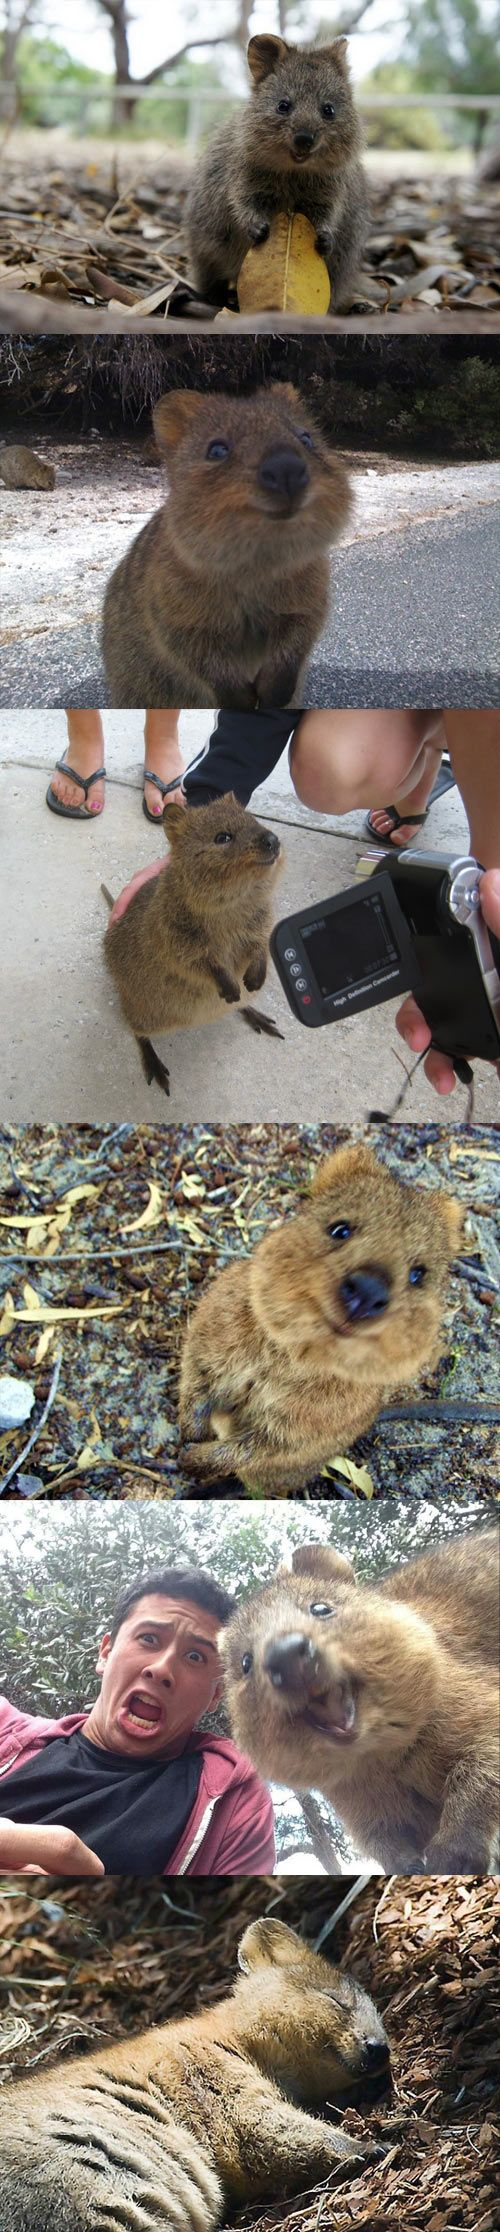 The happiest animal in the world, meet the quokka…